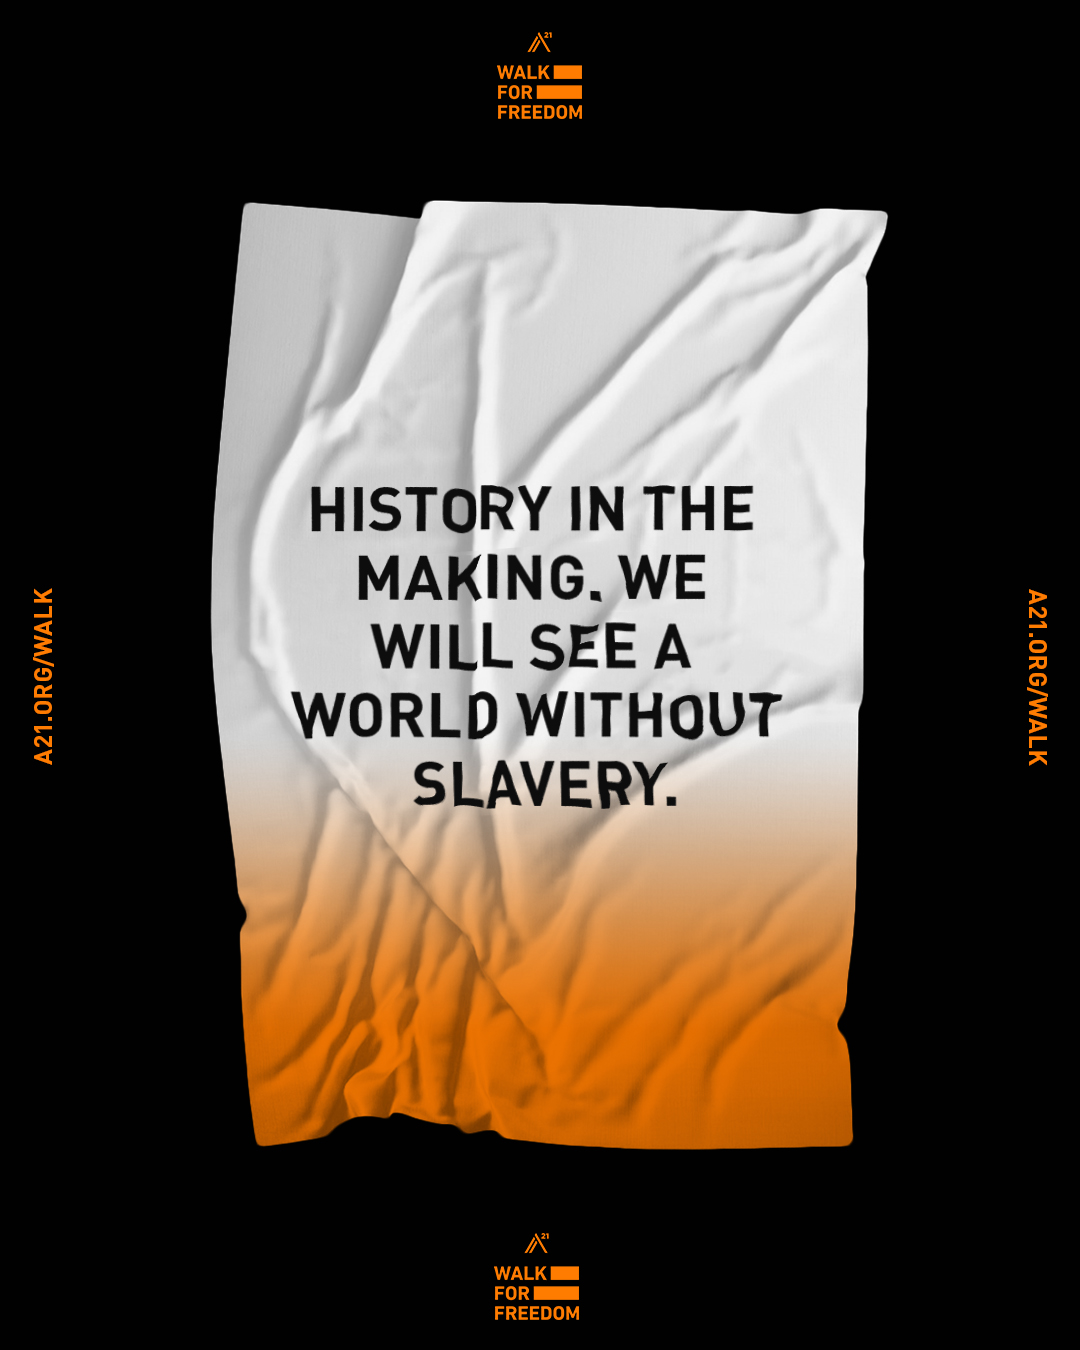 History in the making. We will see a world without slavery.